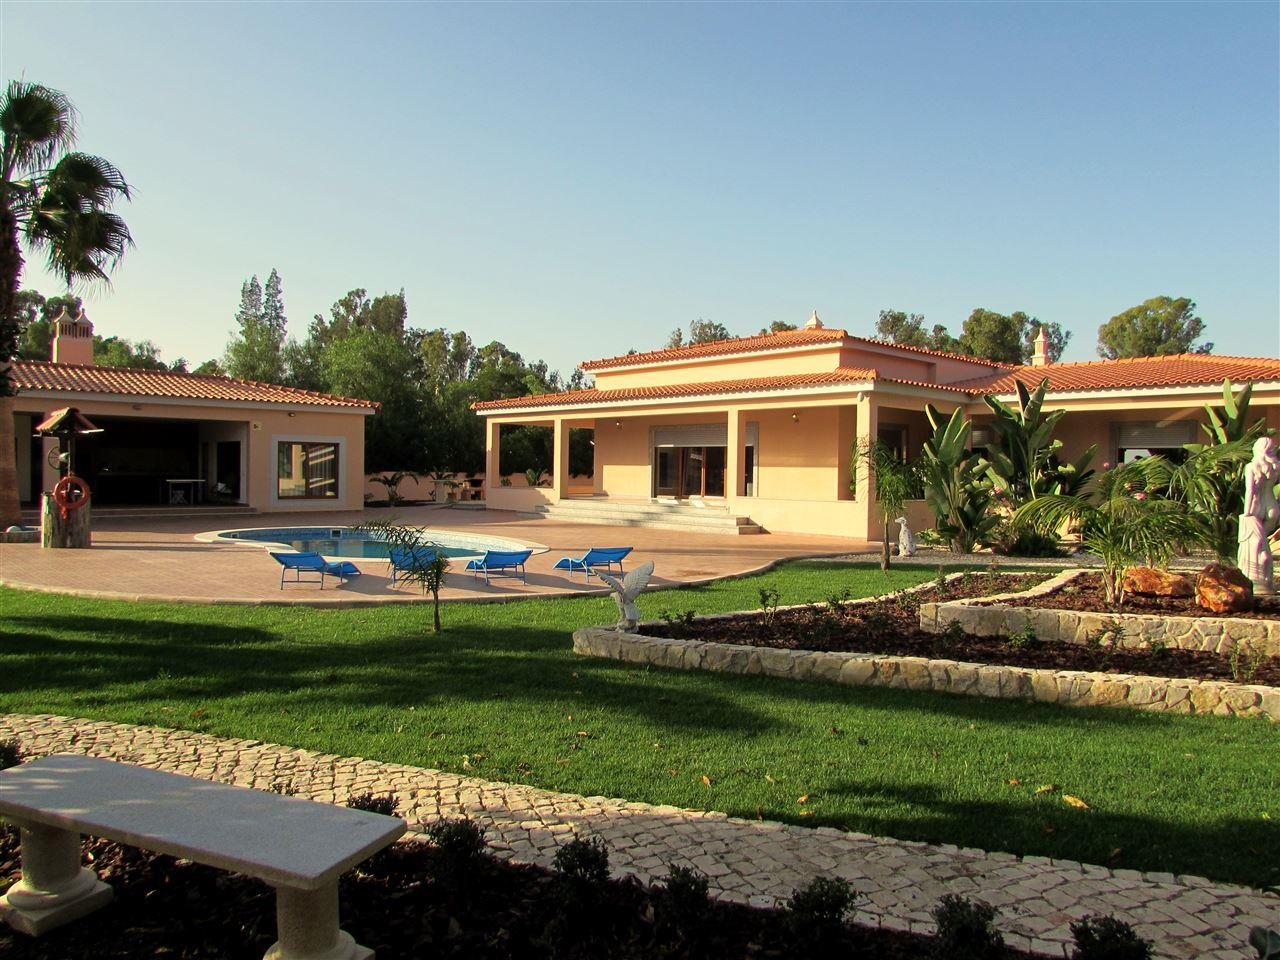 Single Family Home for Sale at Detached house, 3 bedrooms, for Sale Portimao, Algarve, Portugal